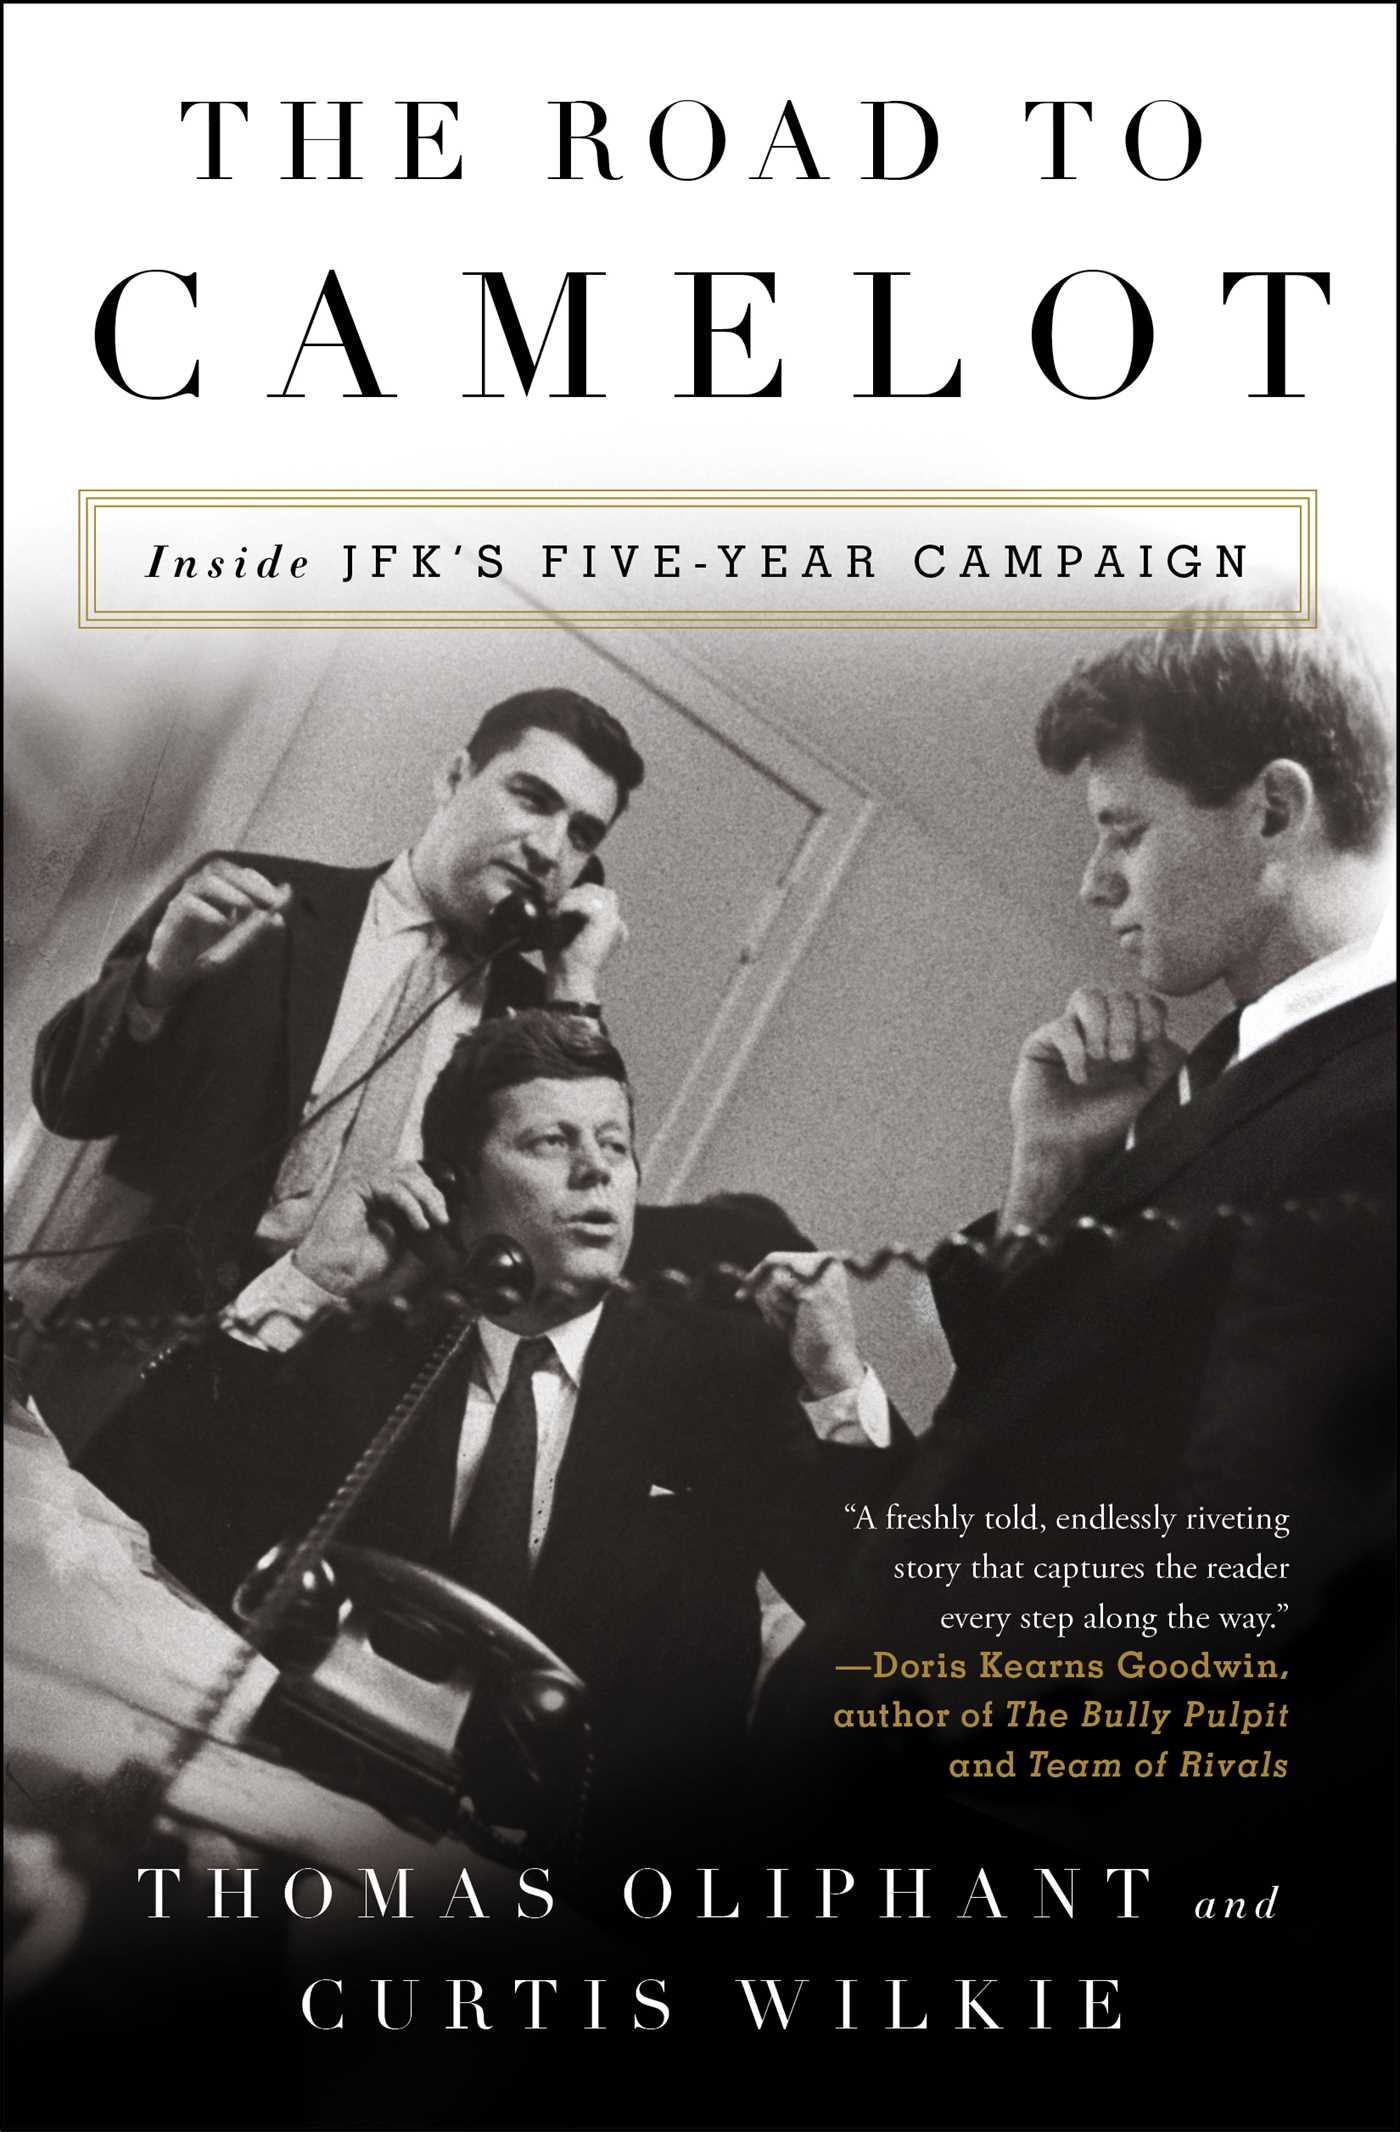 The Road to Camelot Inside JFK's Five-Year Campaign